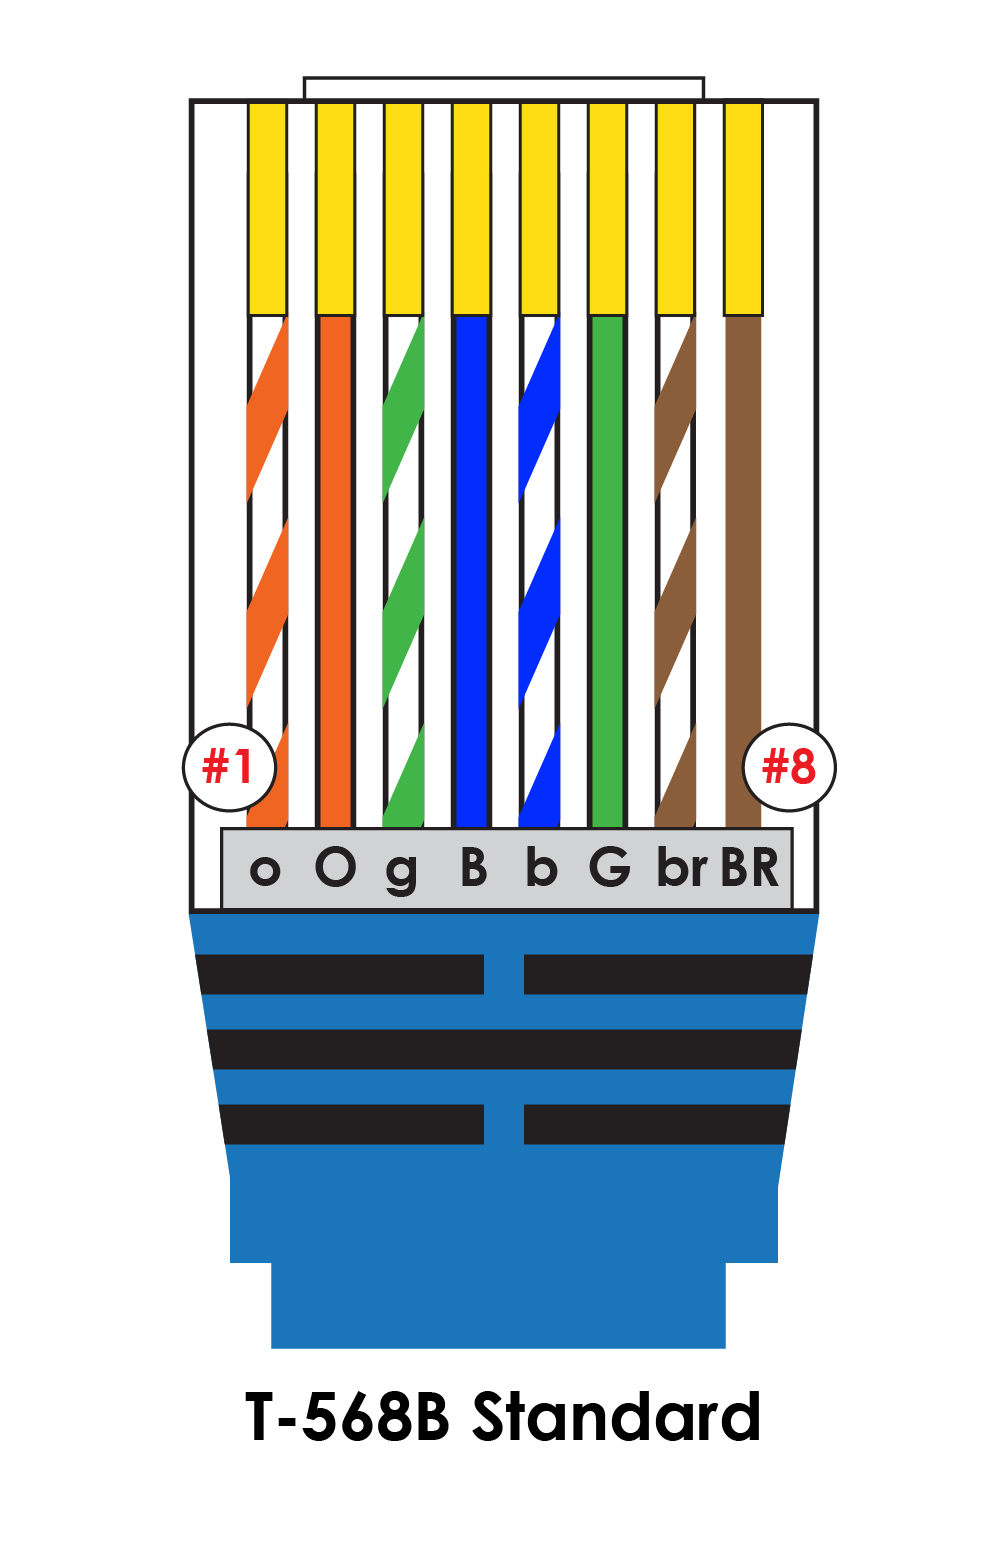 hight resolution of iec t568b pin out